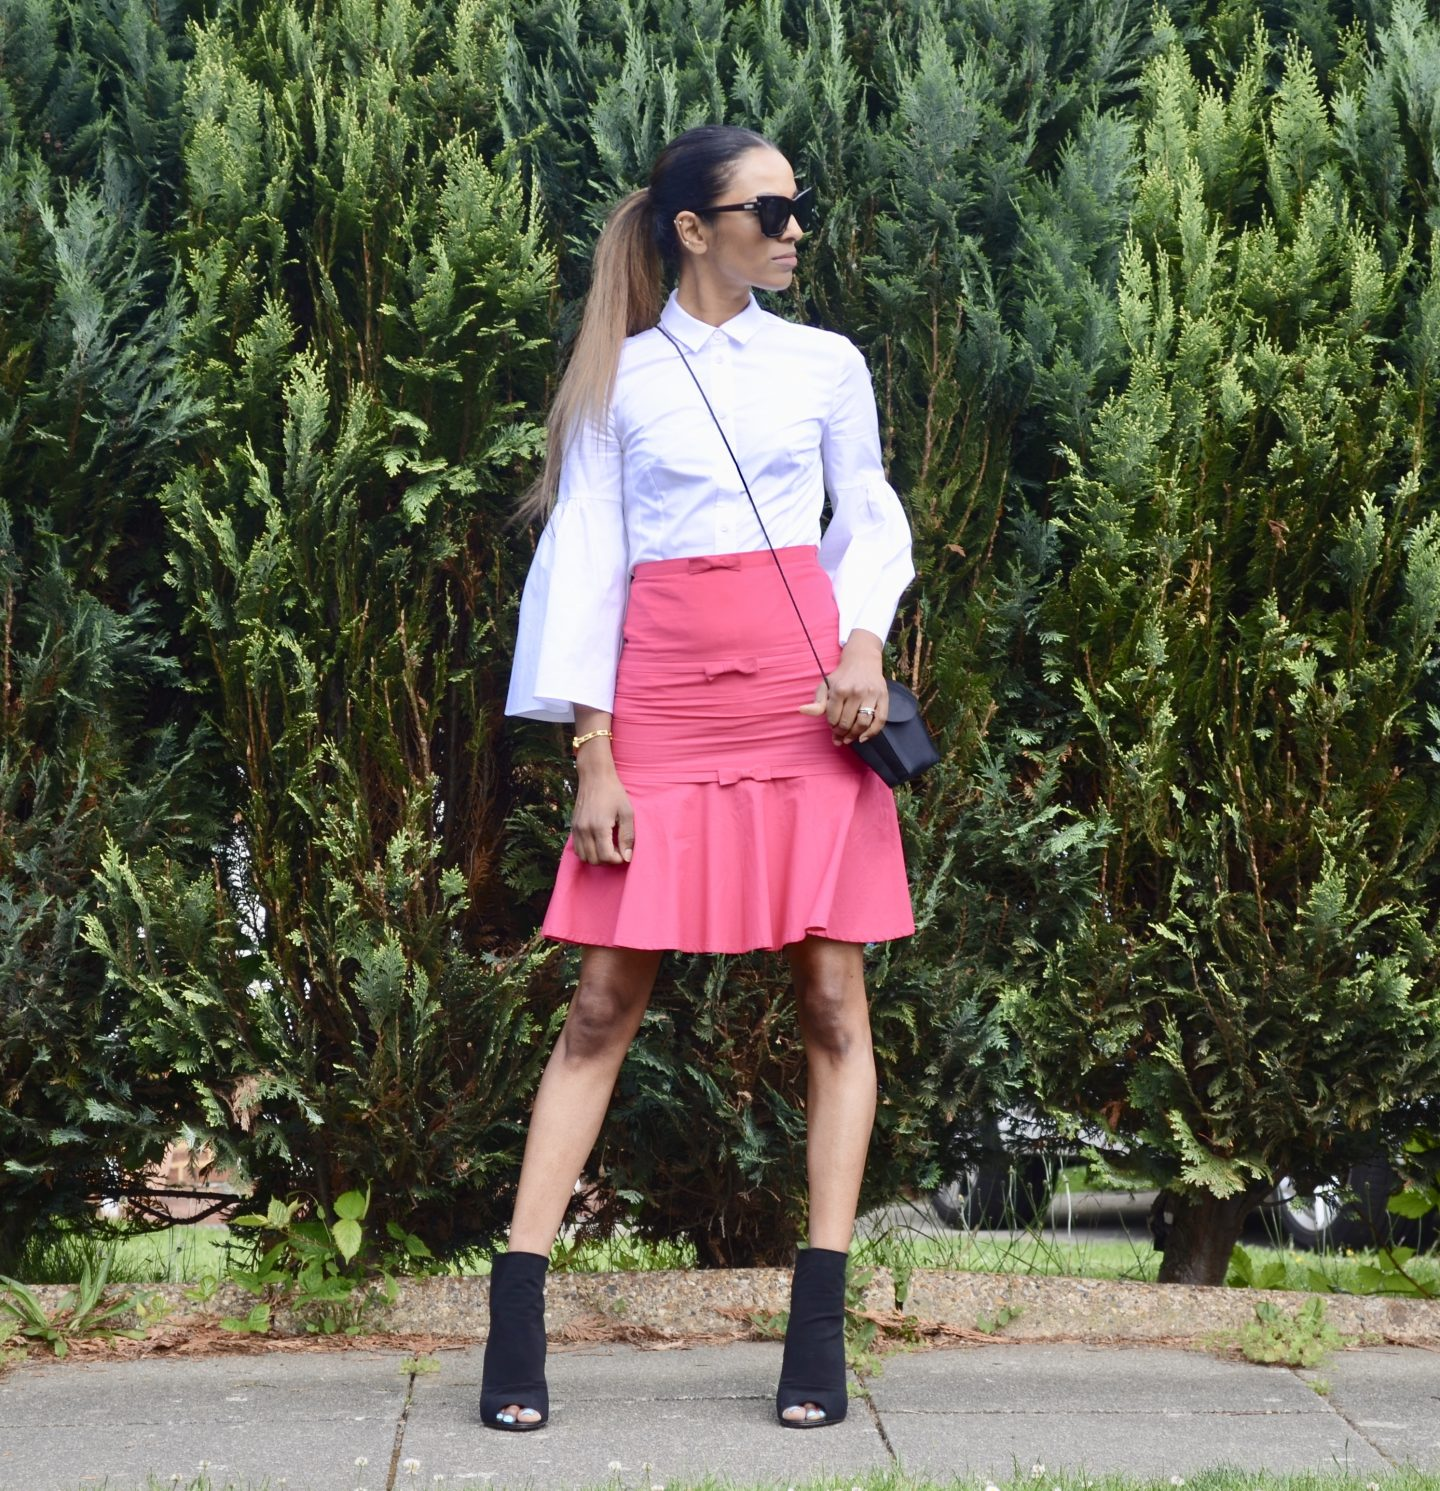 HOW TO STYLE FUCHSIA